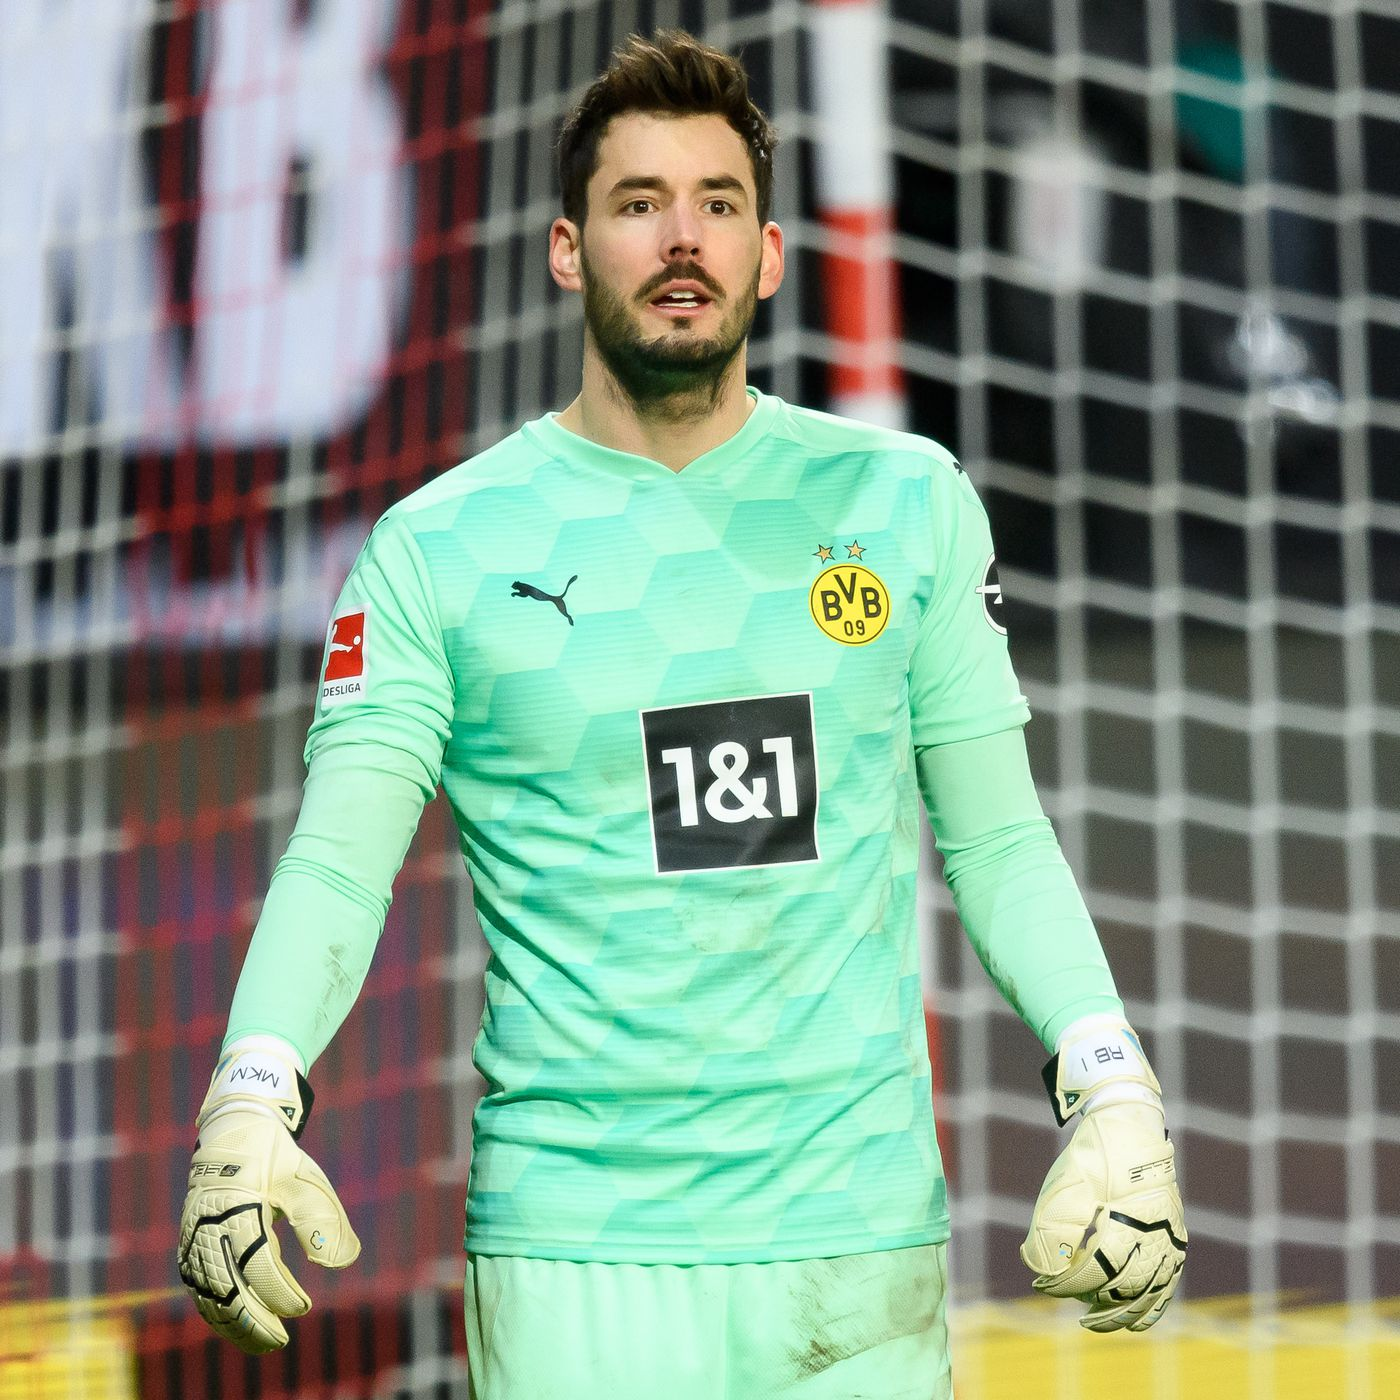 Green, Red or Black – Roman Bürki's Jersey Could be the 12th Man ...